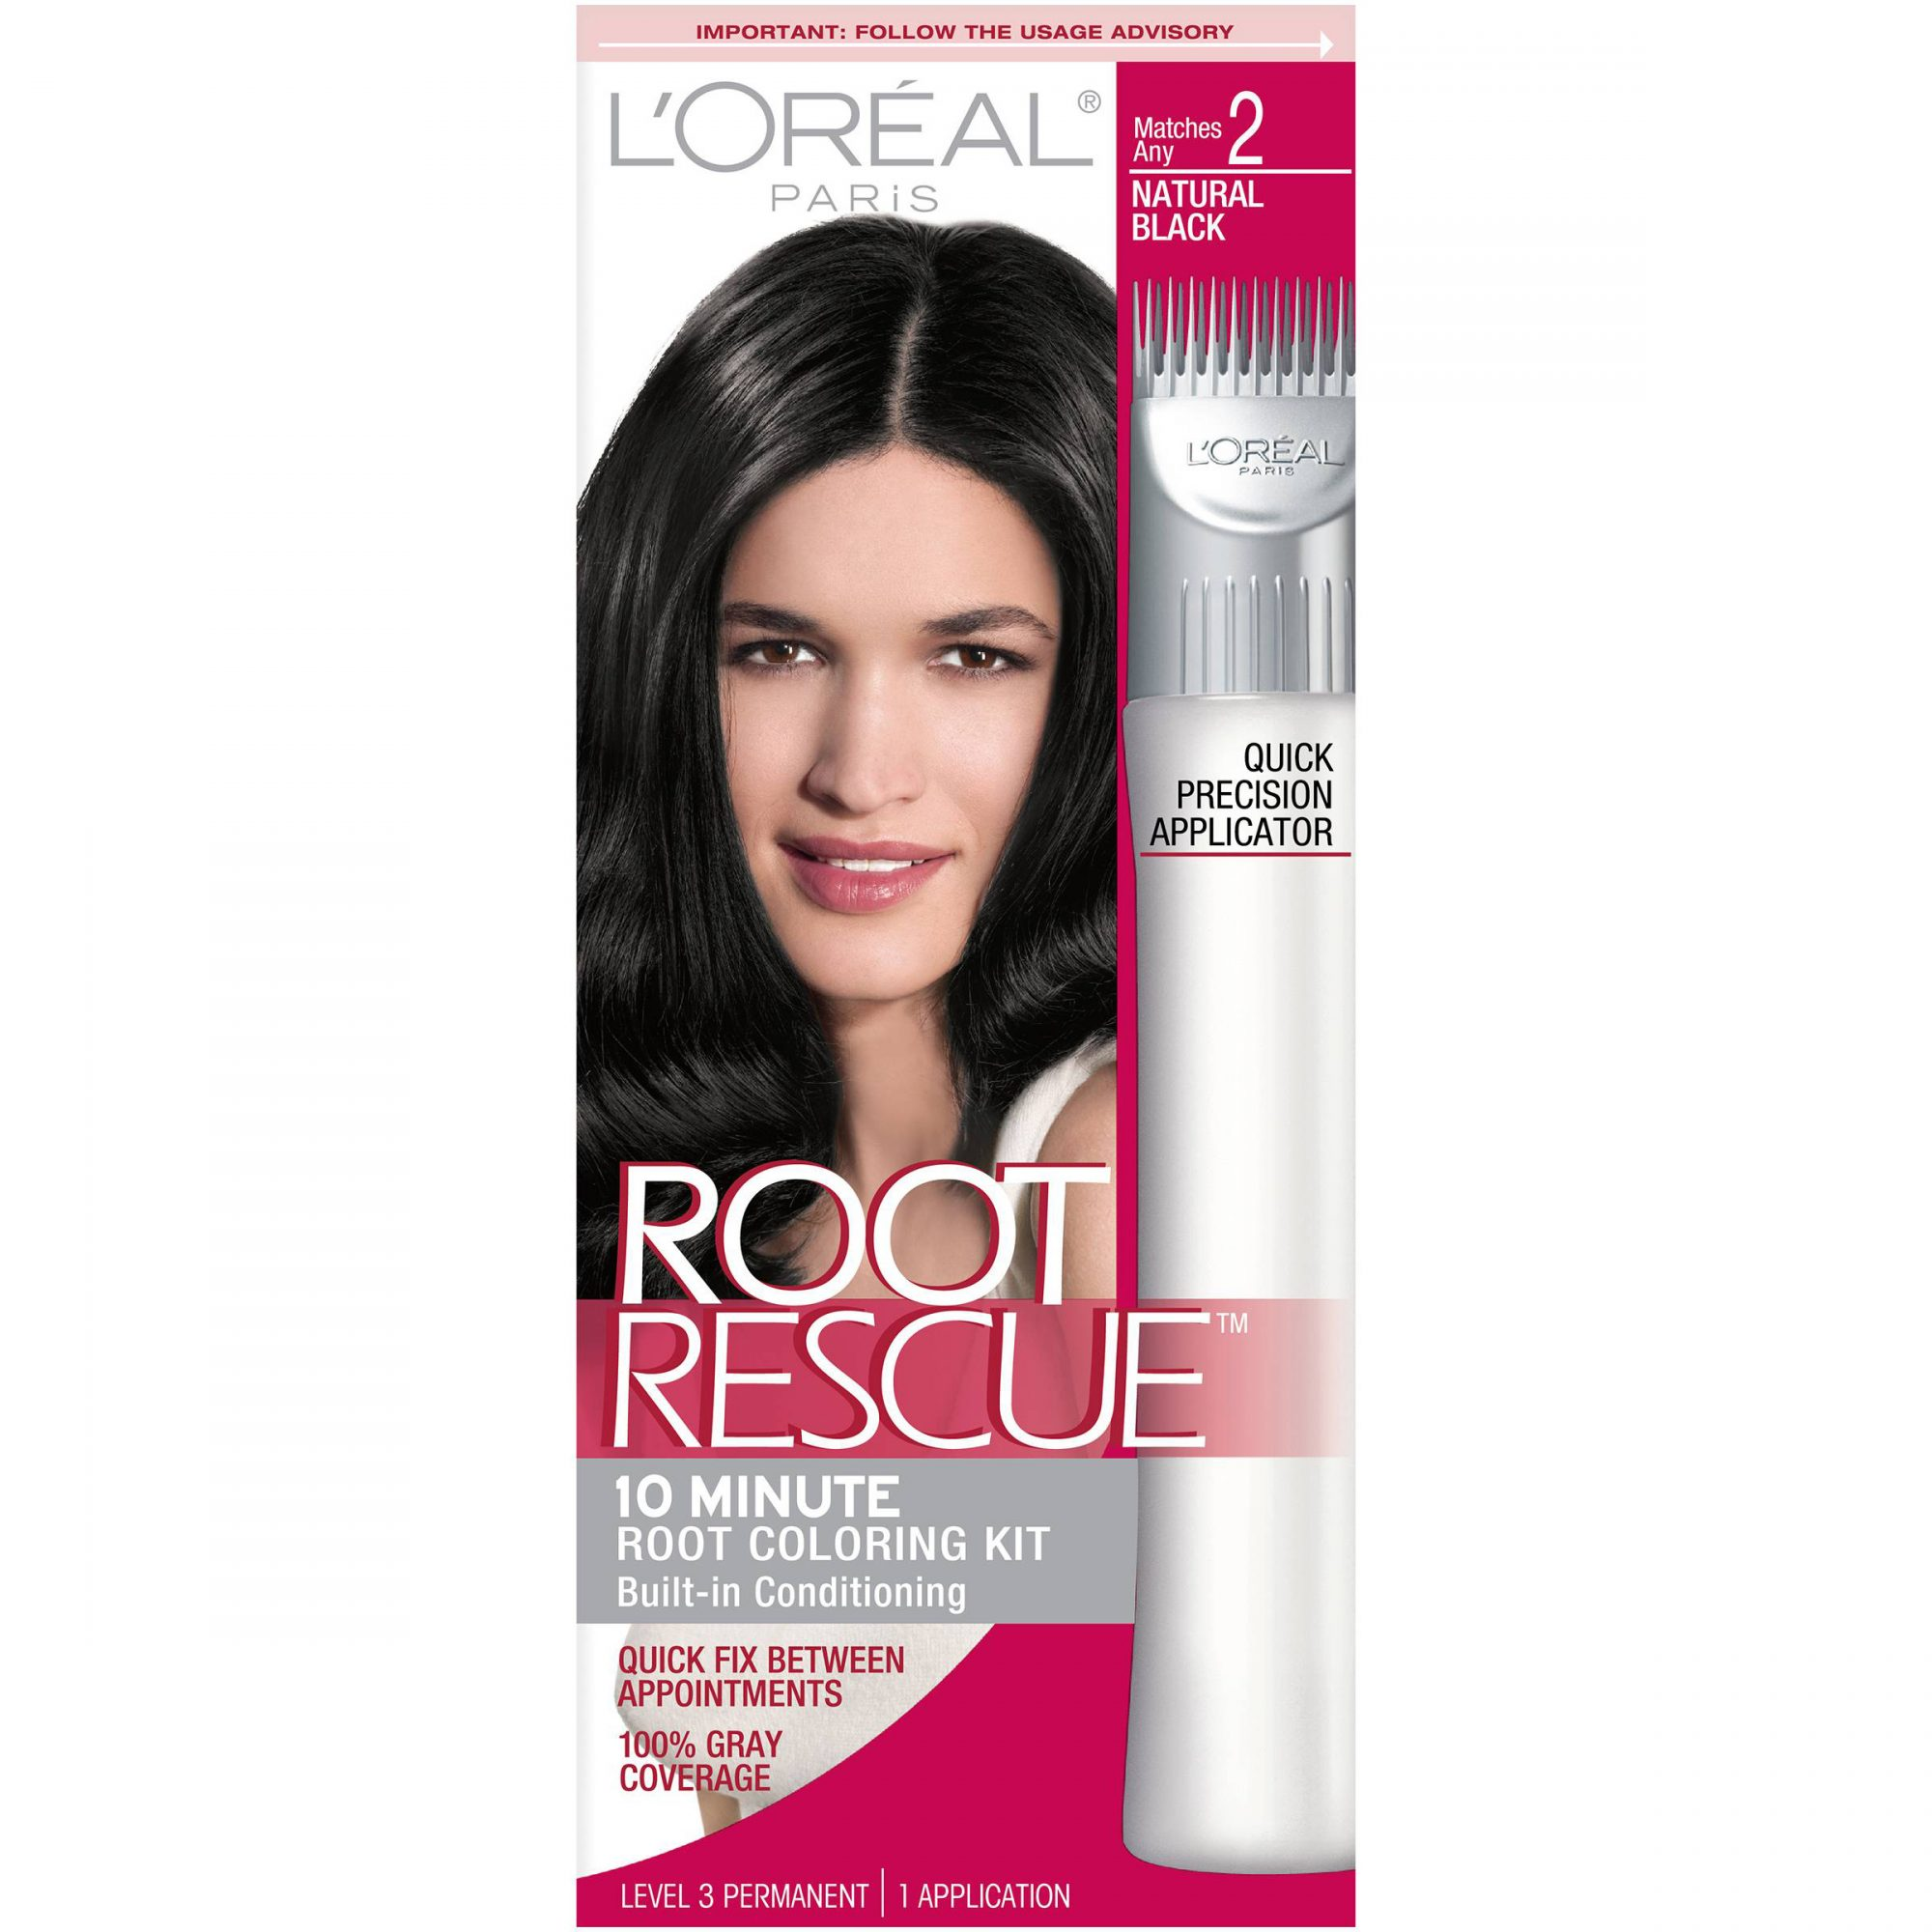 <p>L'Oreal Paris Root Rescue 10 Minute Root Coloring Kit</p>